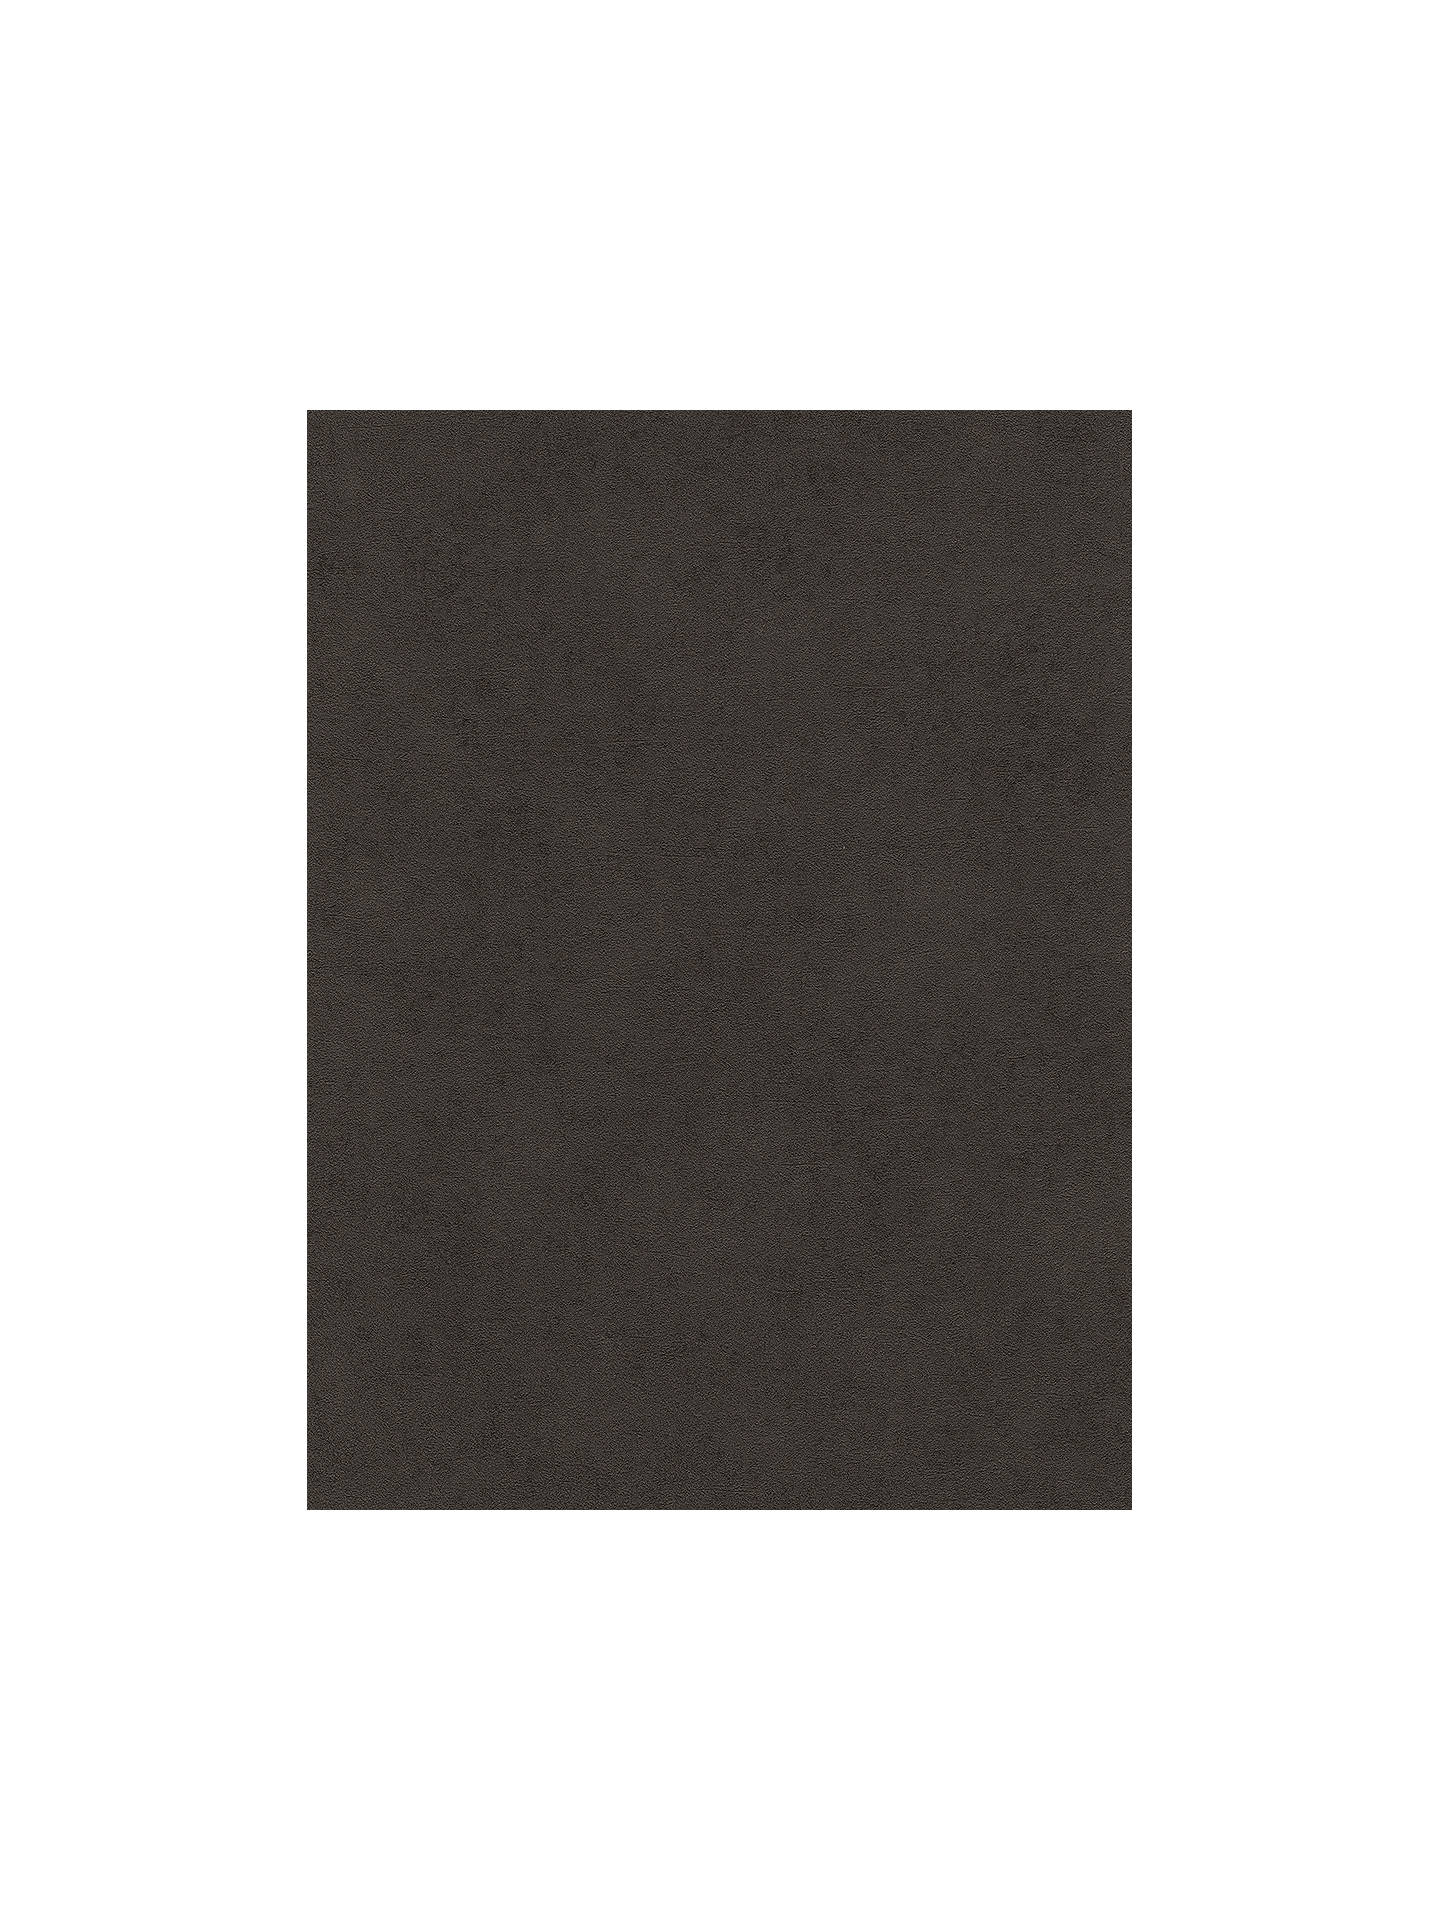 Buy Galerie Concrete Wallpaper, 467246 Online at johnlewis.com